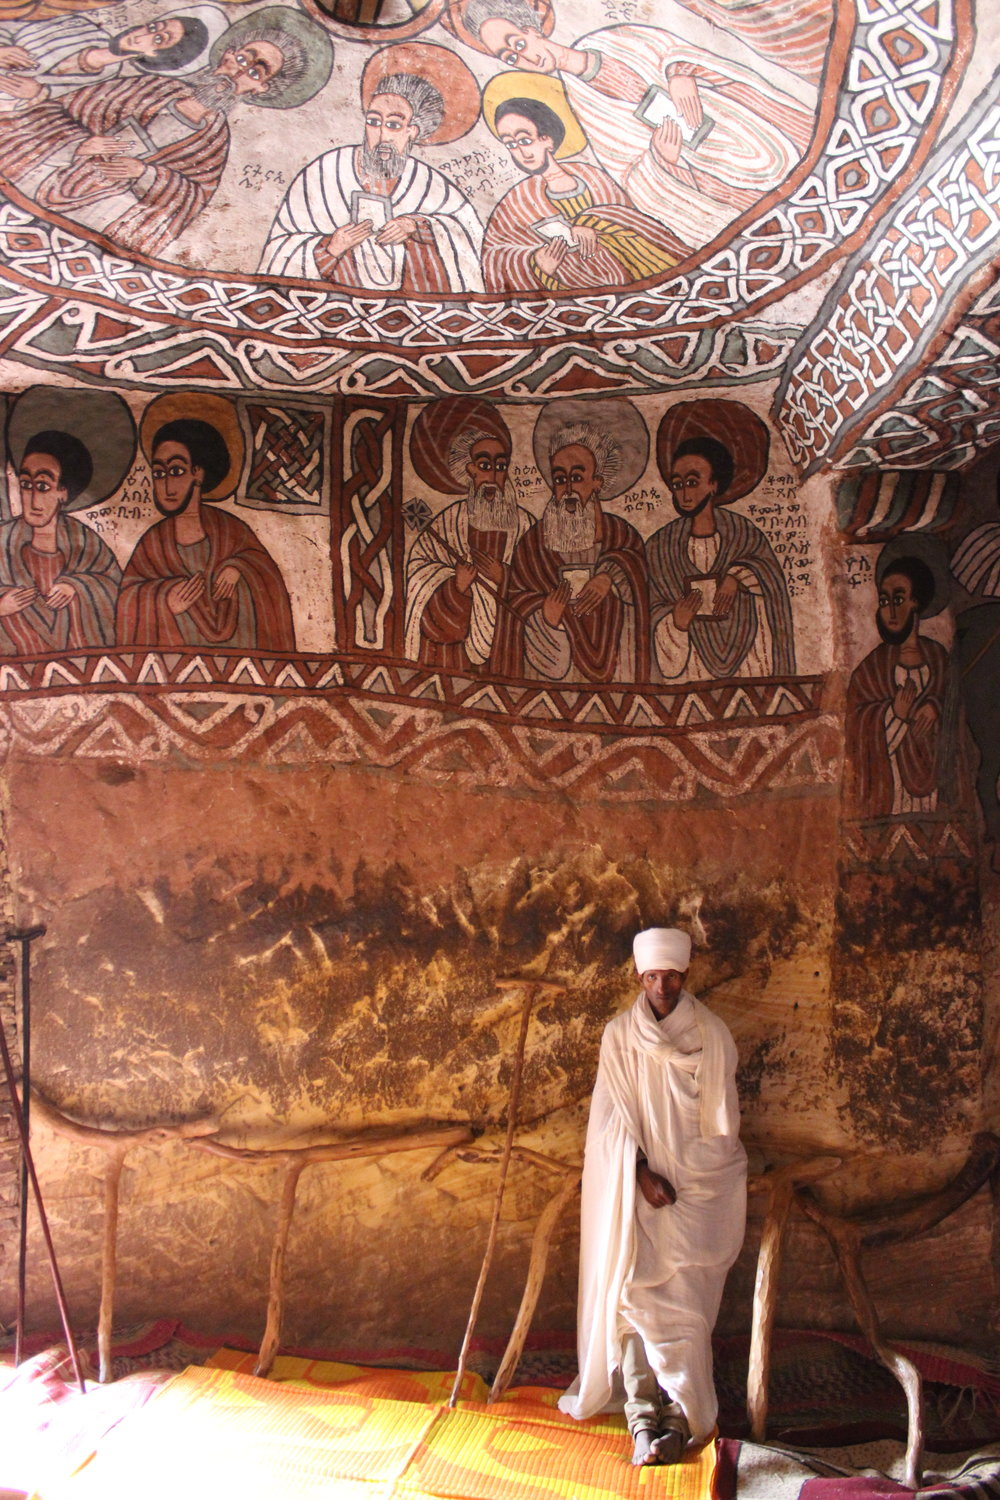 Abune Yemata Guh, a rock-hewn church in the Tigray region of Ethiopia. (Photo: Brittany Gibbons)